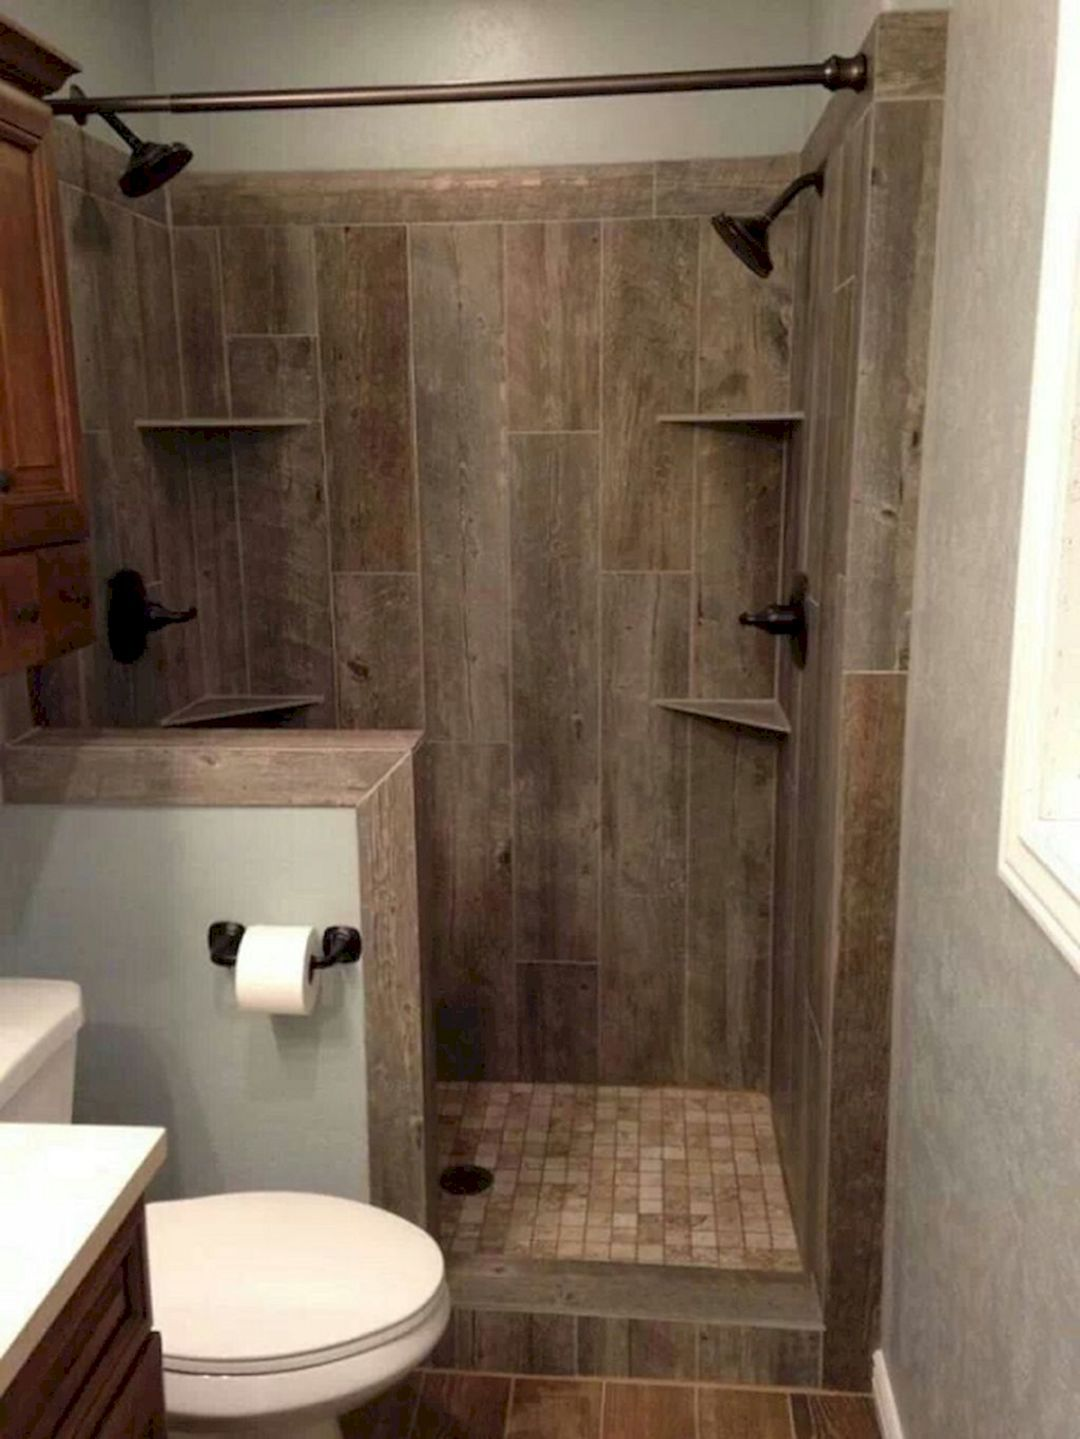 Bathroom Designs For Small Space 115 Extraordinary Small Bathroom Designs For Small Space  Small